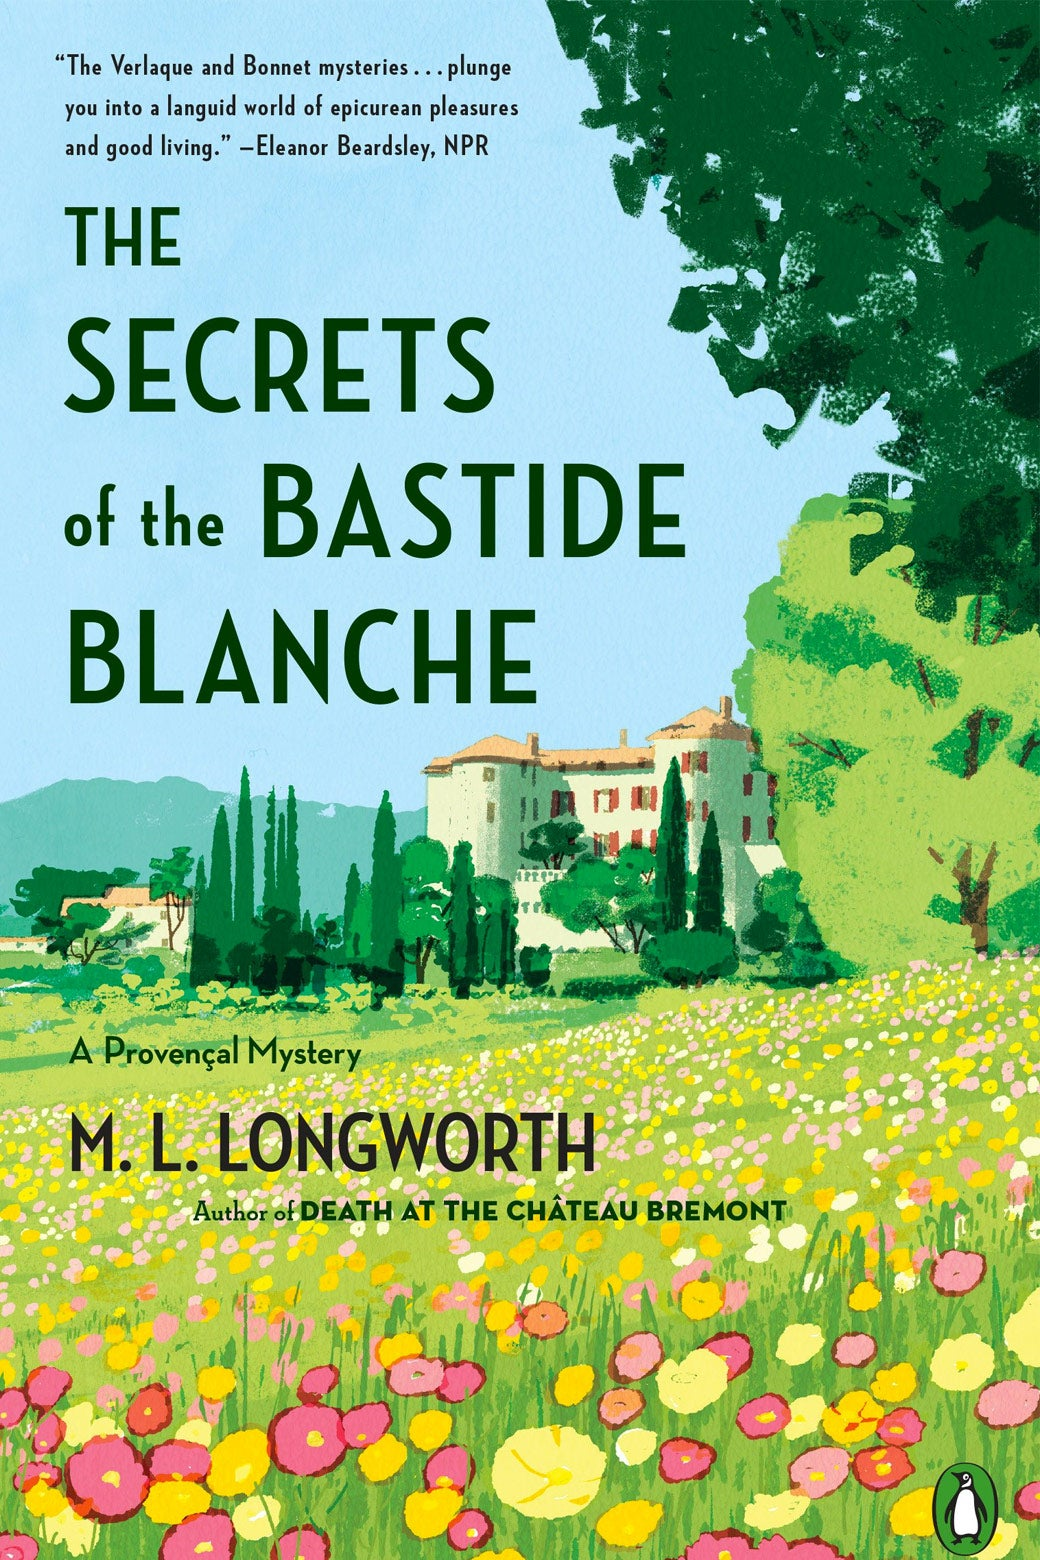 The Secrets of the Bastide Blanche.